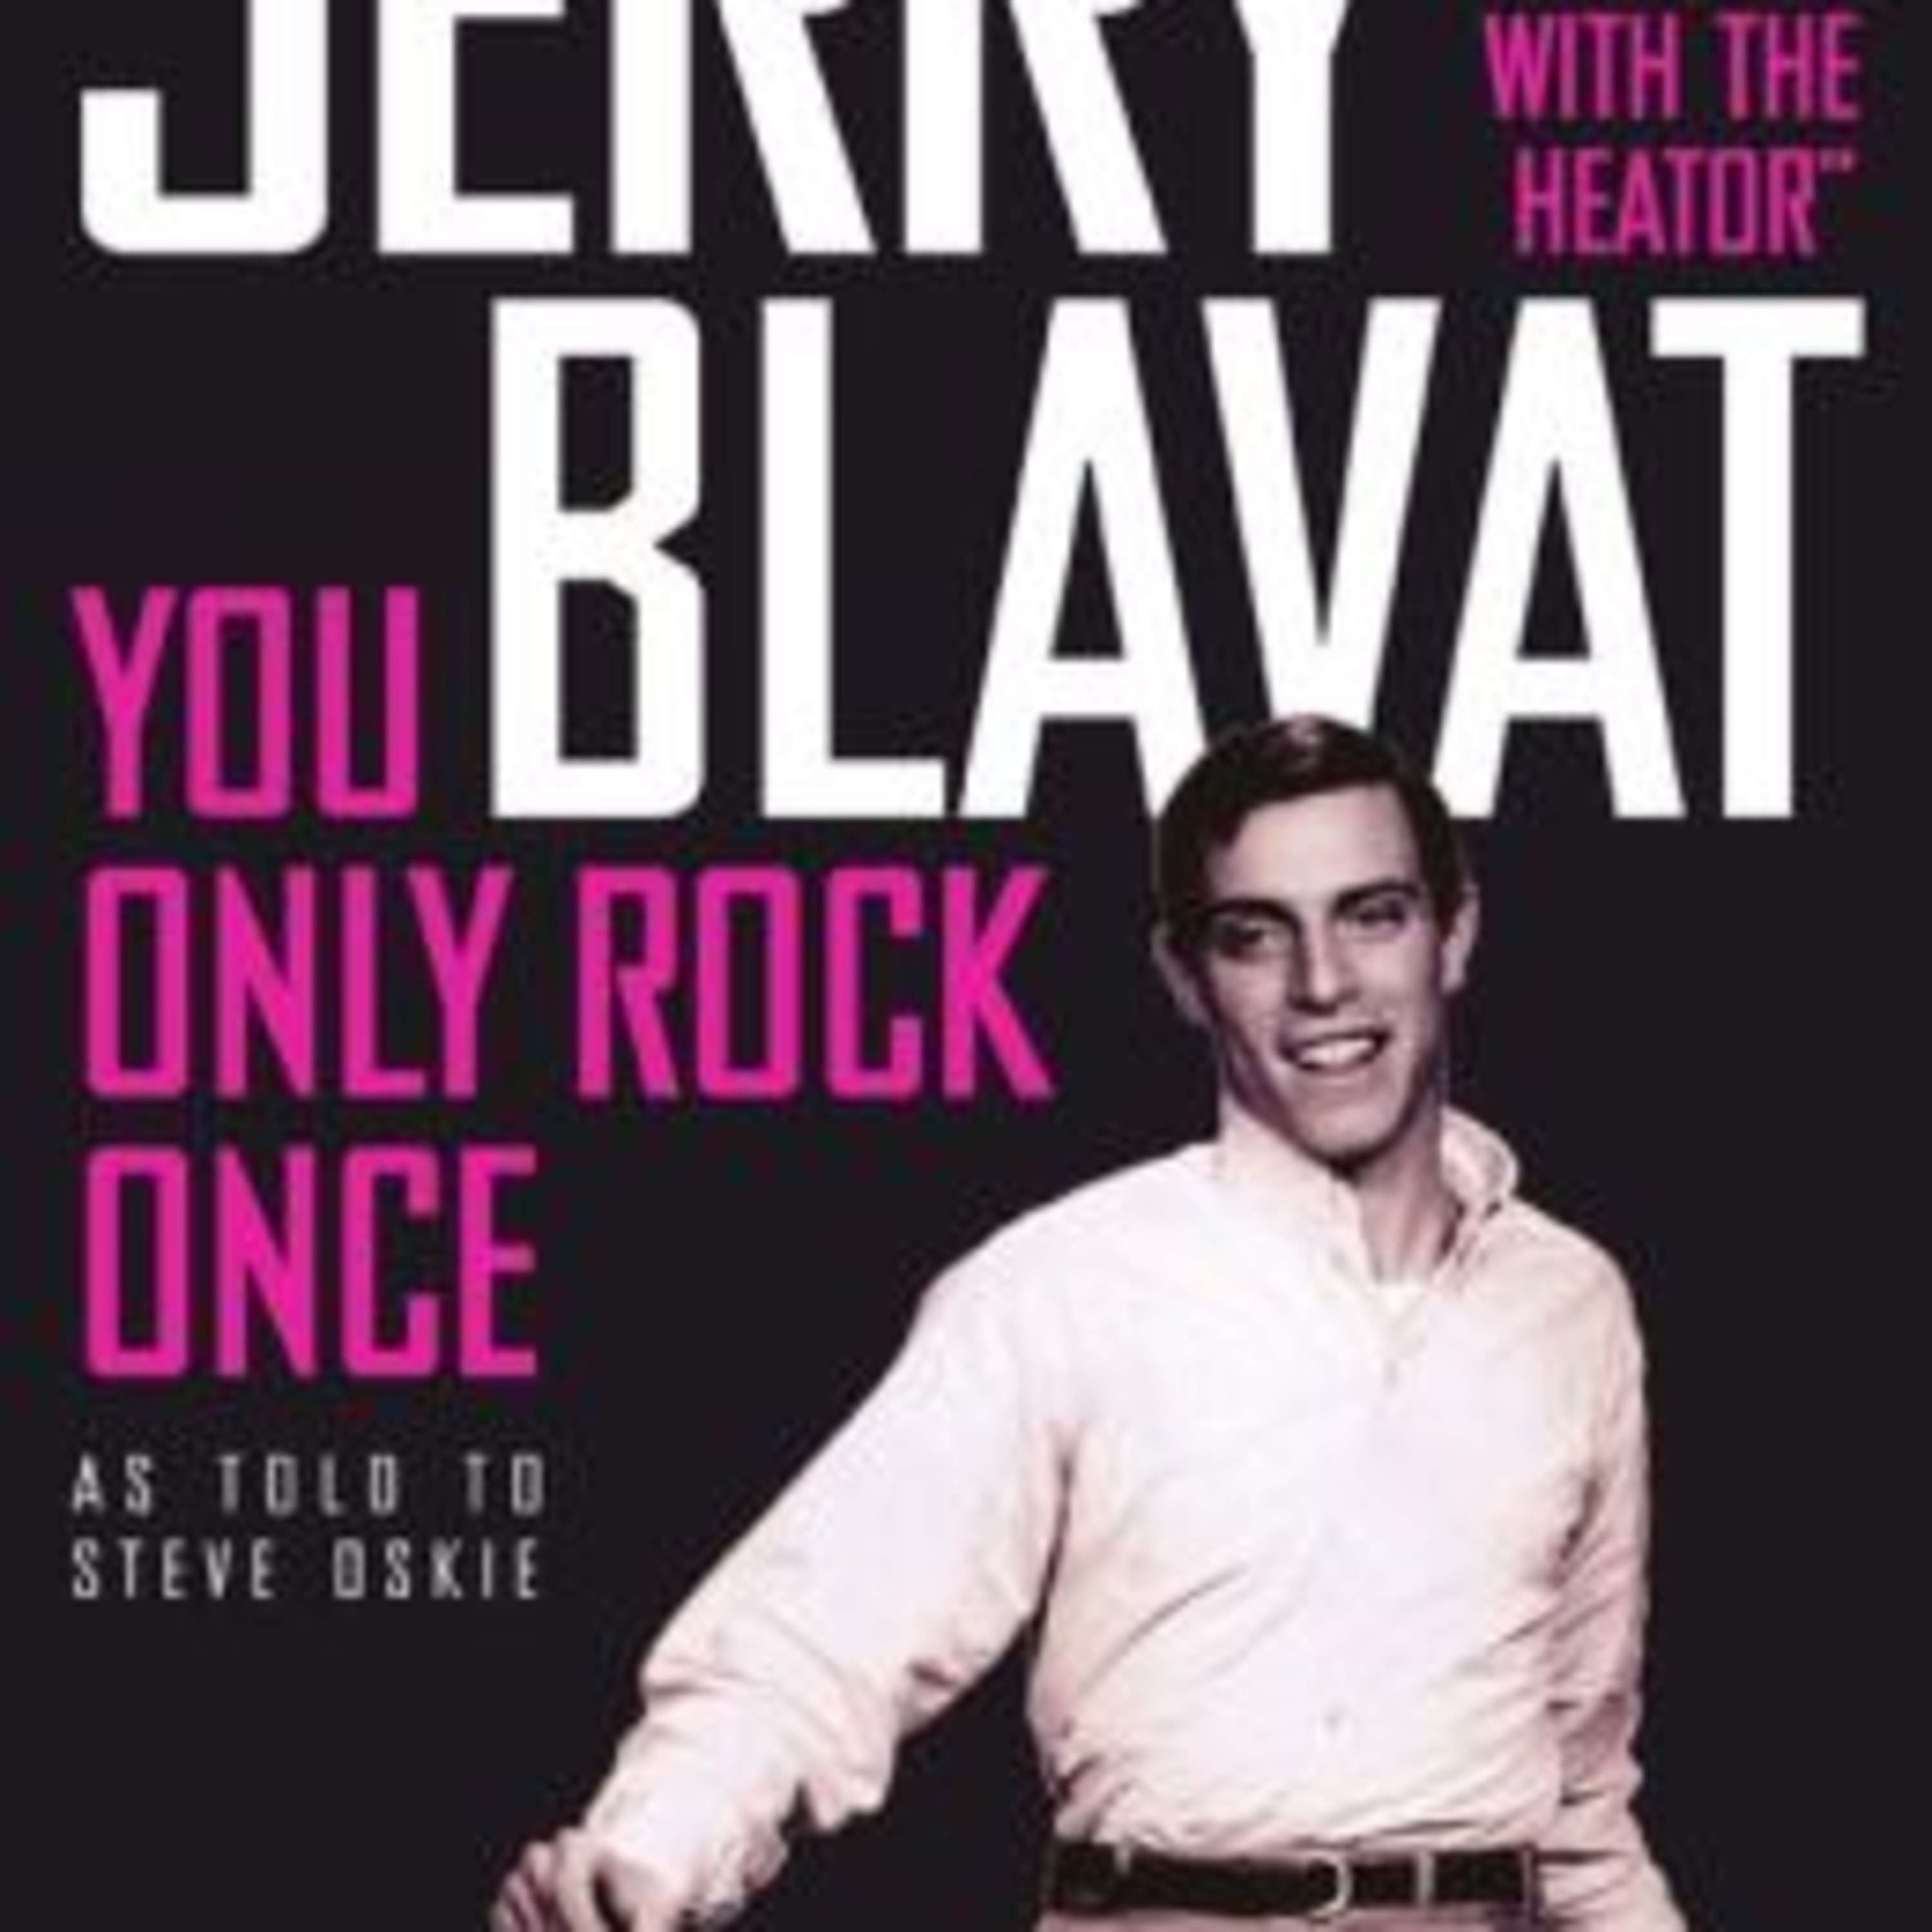 """Jerry Blavat  """"The Geator"""" You Only Rock Once!!"""